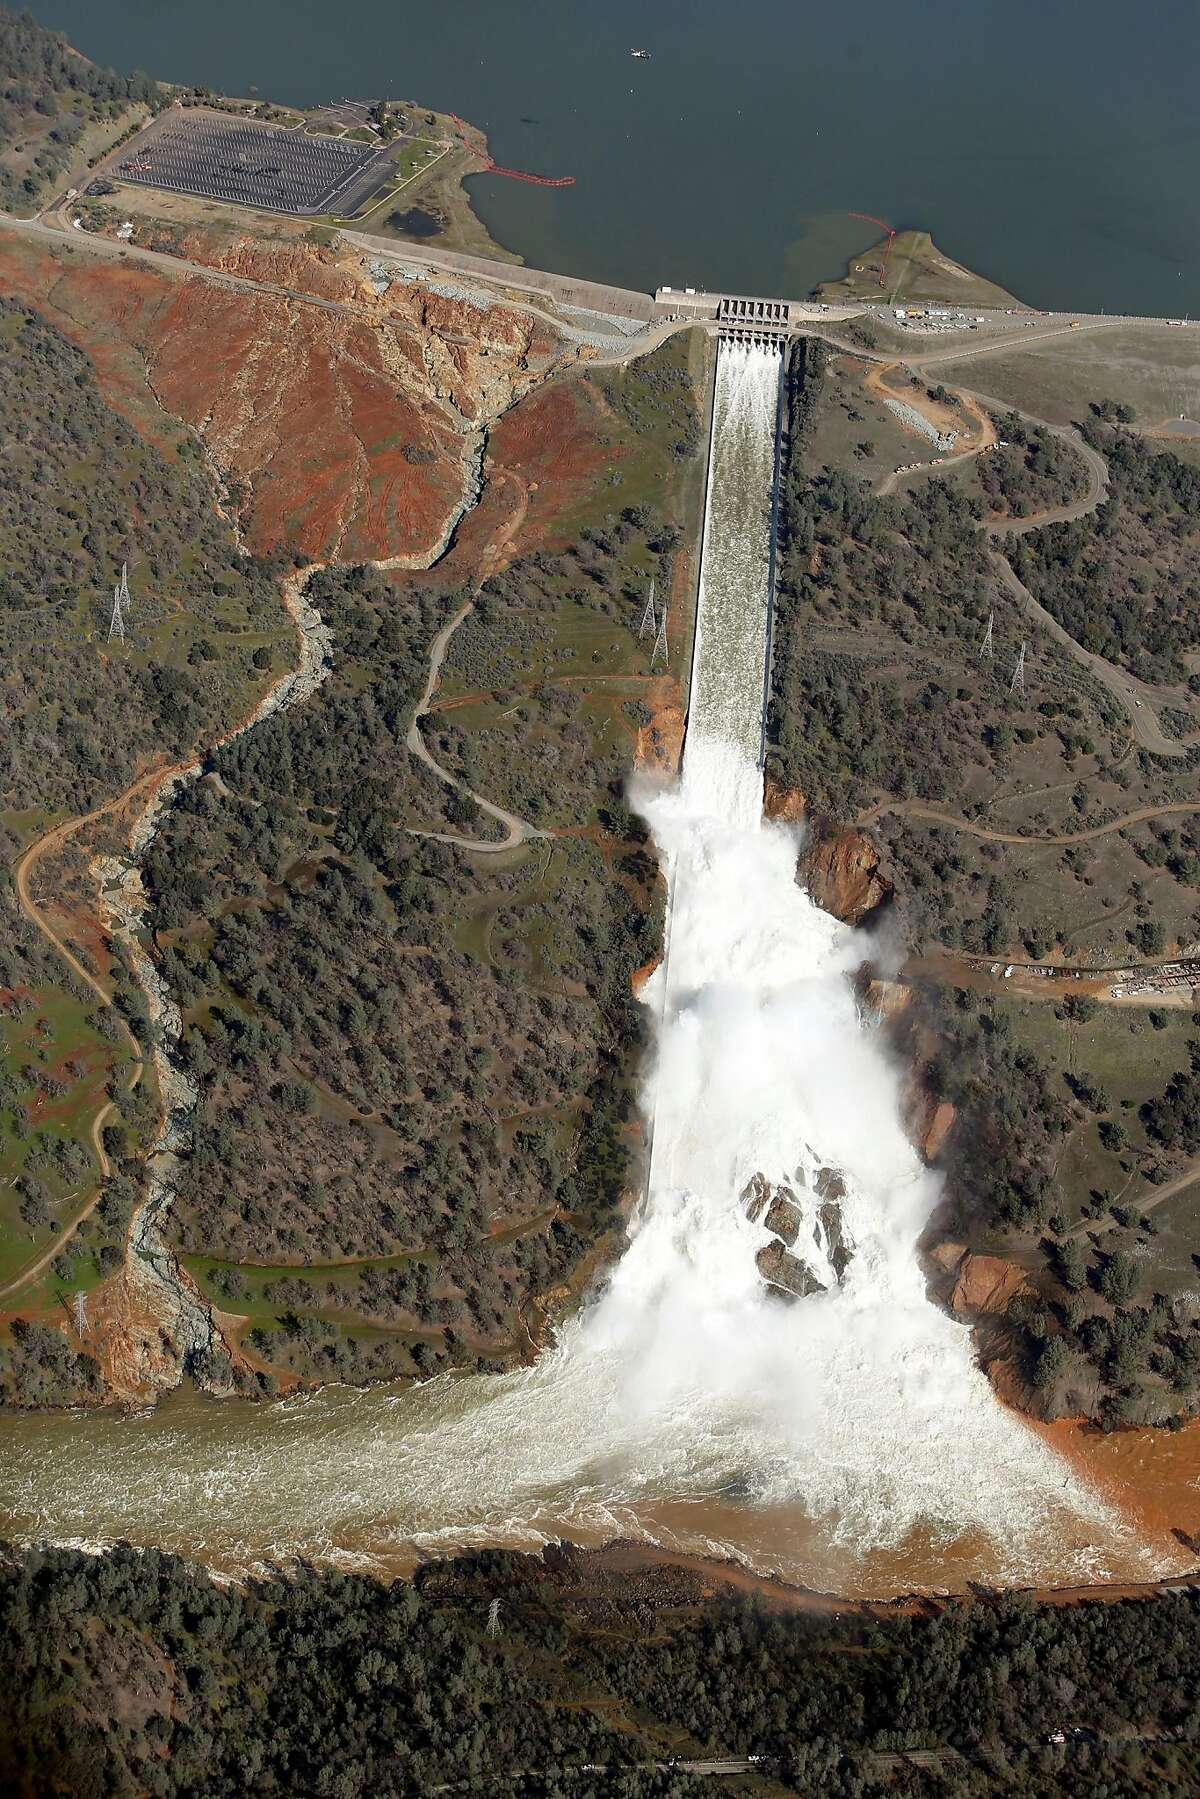 Water flows out of the damaged spillway at Oroville Dam in Oroville, Calif., on Tuesday, February 14, 2017. State water officials say they've met their Nov. 1 deadline for rebuilding the dam's two damaged spillways, but federal officials are skeptical that the repaired spillways can handle a big flood.